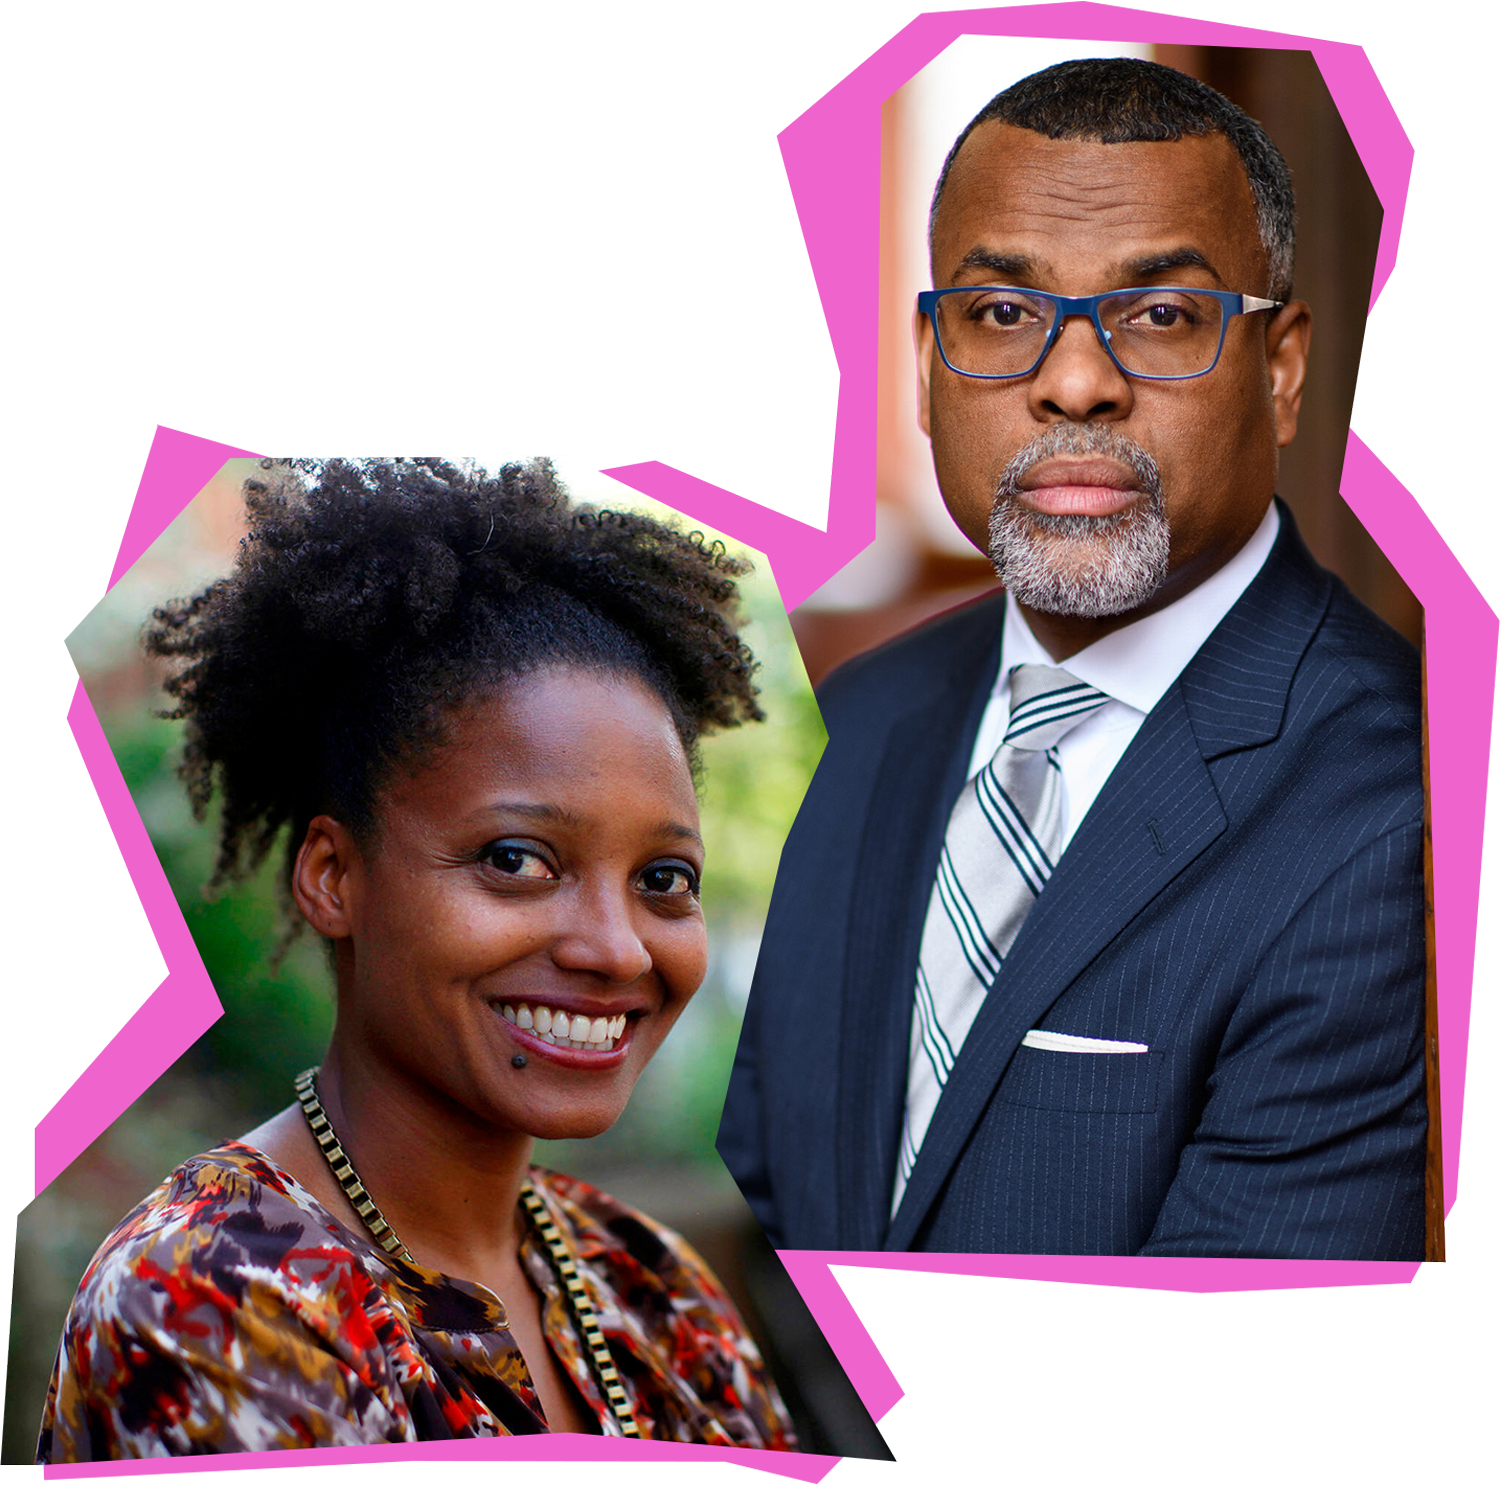 Tracy K. Smith, Chair of the Lewis Center for the Arts. Eddie S. Glaude, Chair of the African American Studies Department.